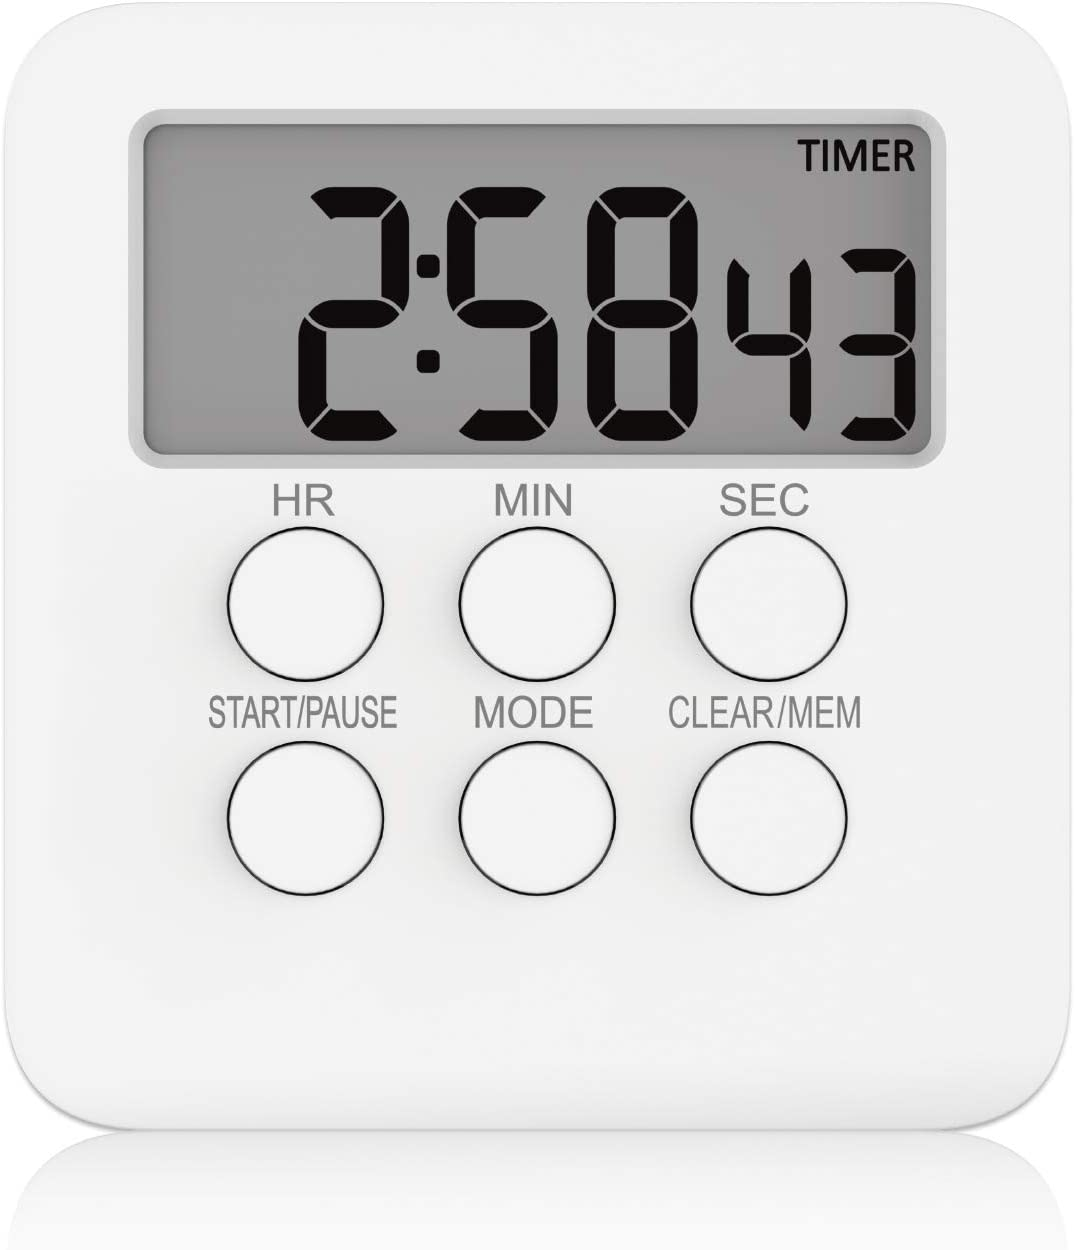 GHEART Kitchen Timer Magnetic Countdown LED Digital Timer, Cooking Timer Magnetic 3 in 1 Clock & Alarm, 24-Hour, Loud Alarm, Large LCD Display, Retractable Stand, Hanging & Magnetic Backing (White)